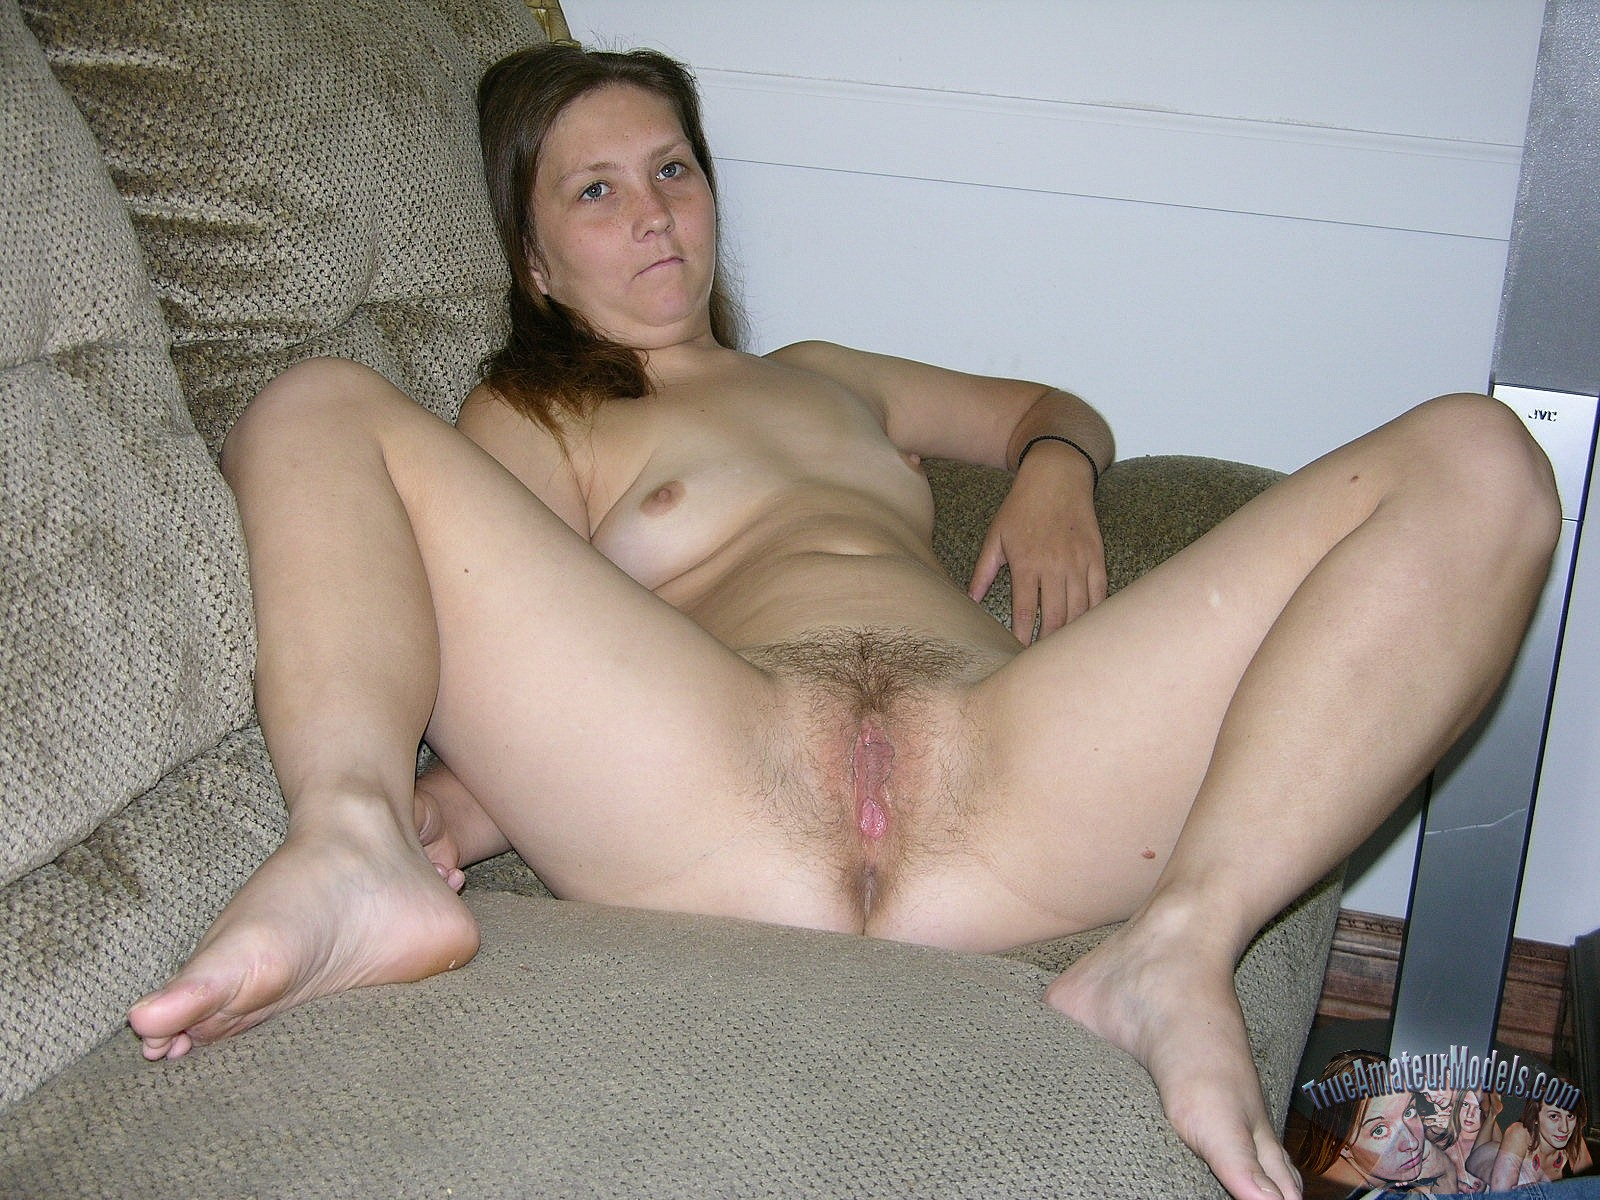 Dirty female sluts naked